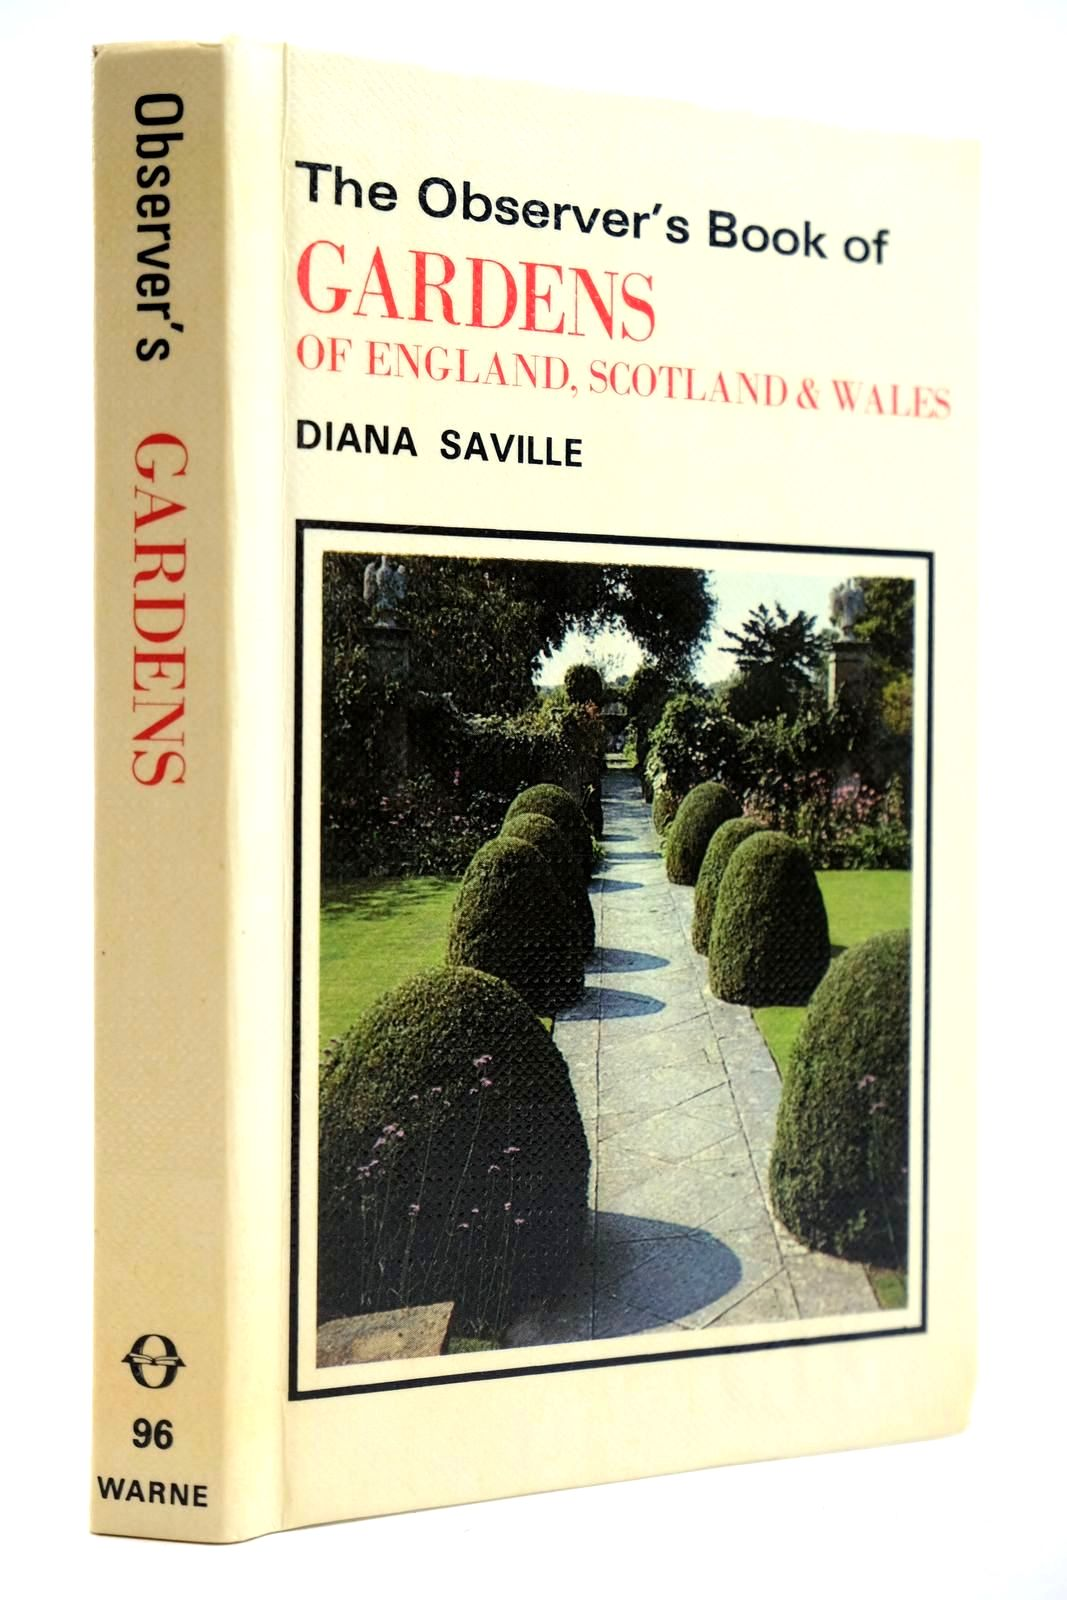 Photo of THE OBSERVER'S BOOK OF GARDENS OF ENGLAND, SCOTLAND & WALES- Stock Number: 2132056